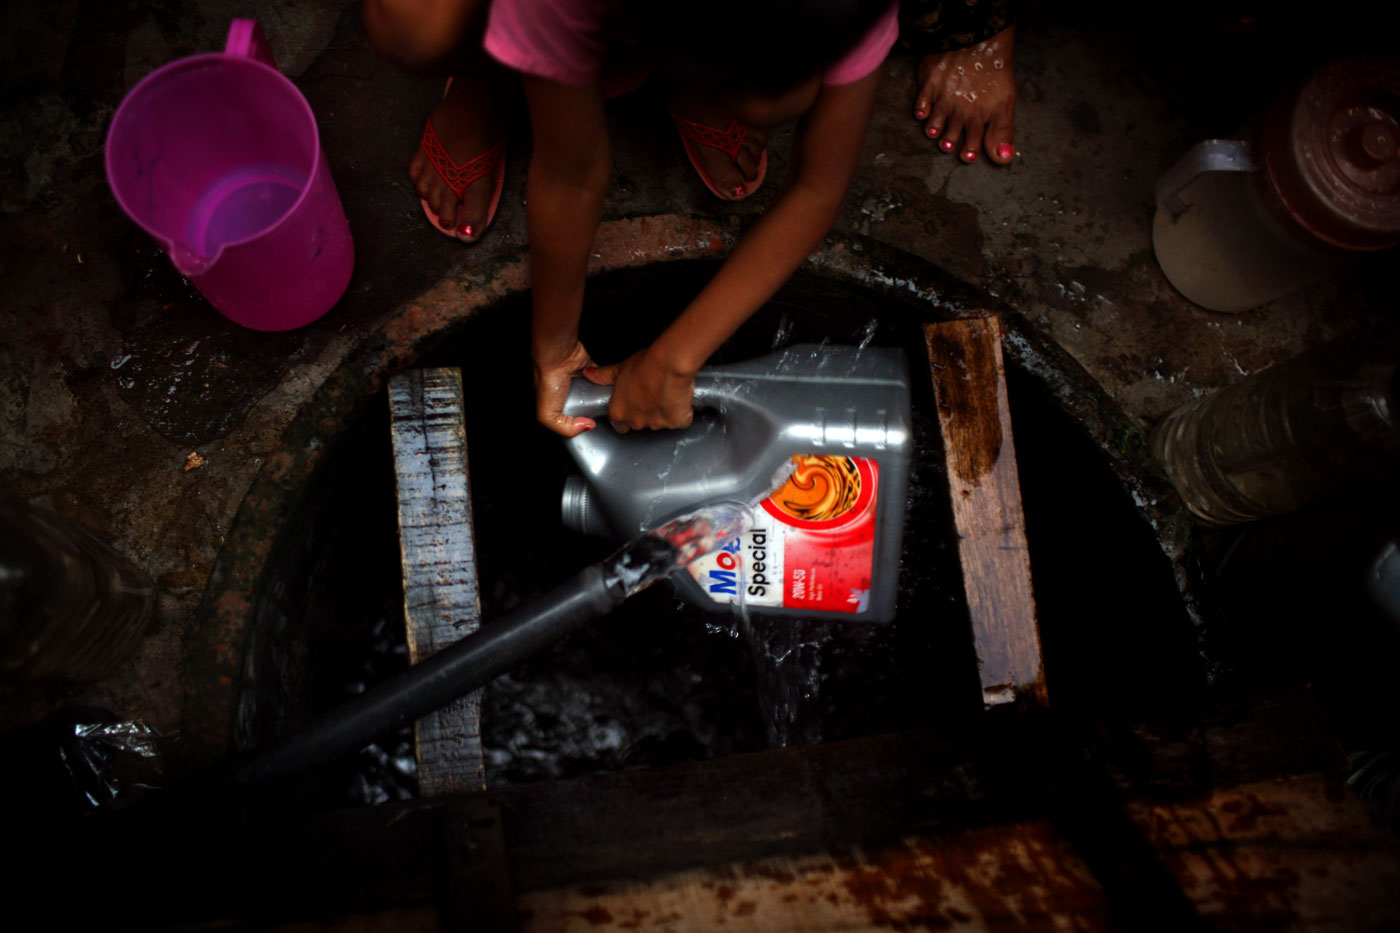 Nipa Hawladar washes out an oil container which will be used for carrying water for them to cook with and to drink from.